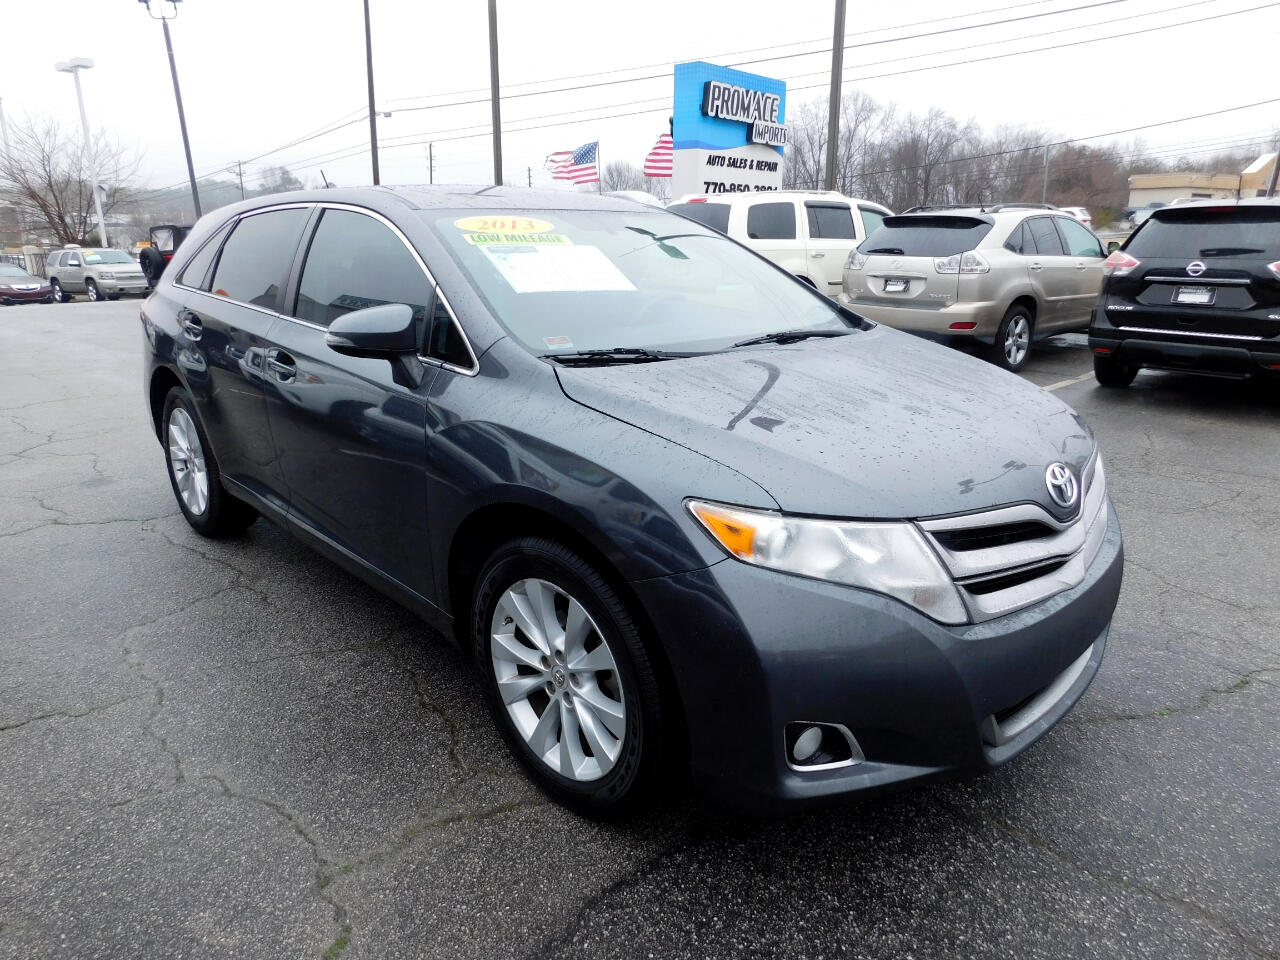 2013 Toyota Venza 4dr Wgn I4 FWD XLE (Natl)